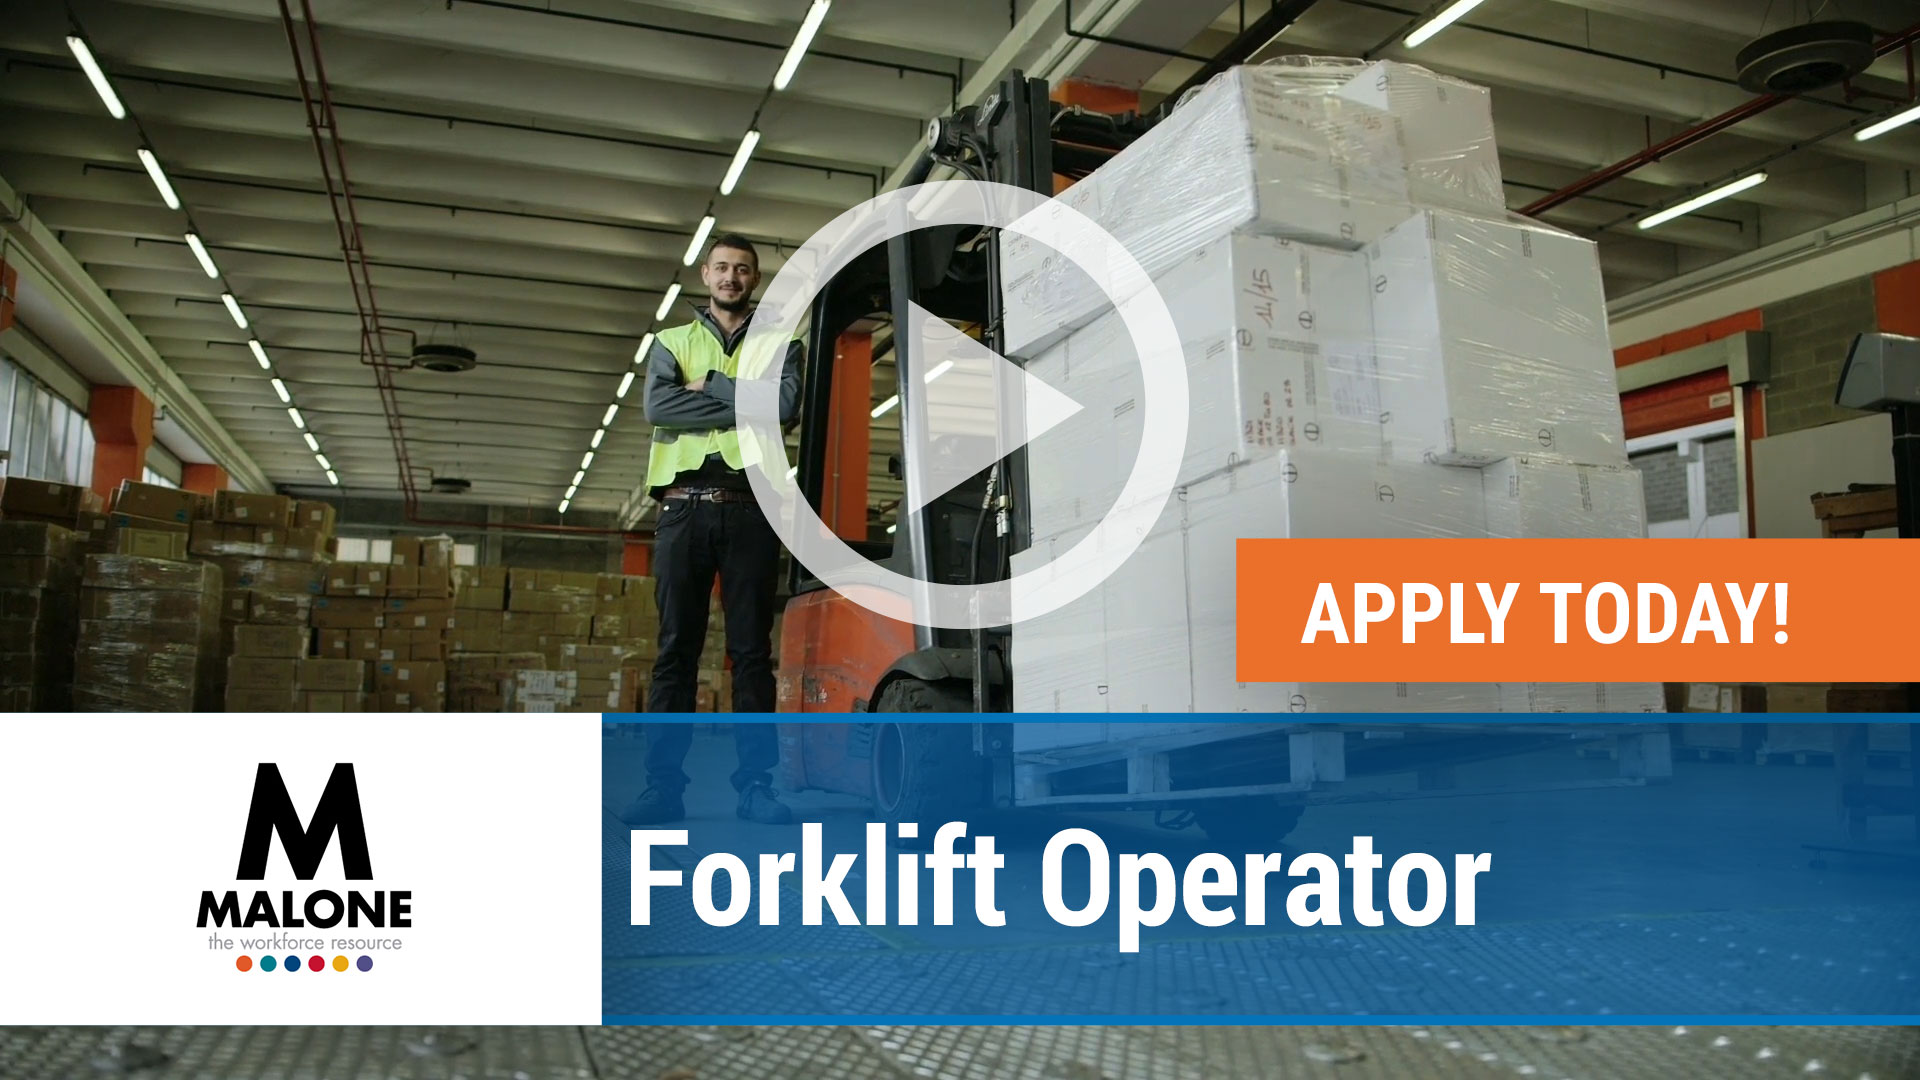 Watch our careers video for available job opening Forklift Operator in Aurora, Itasca, Hanover Park